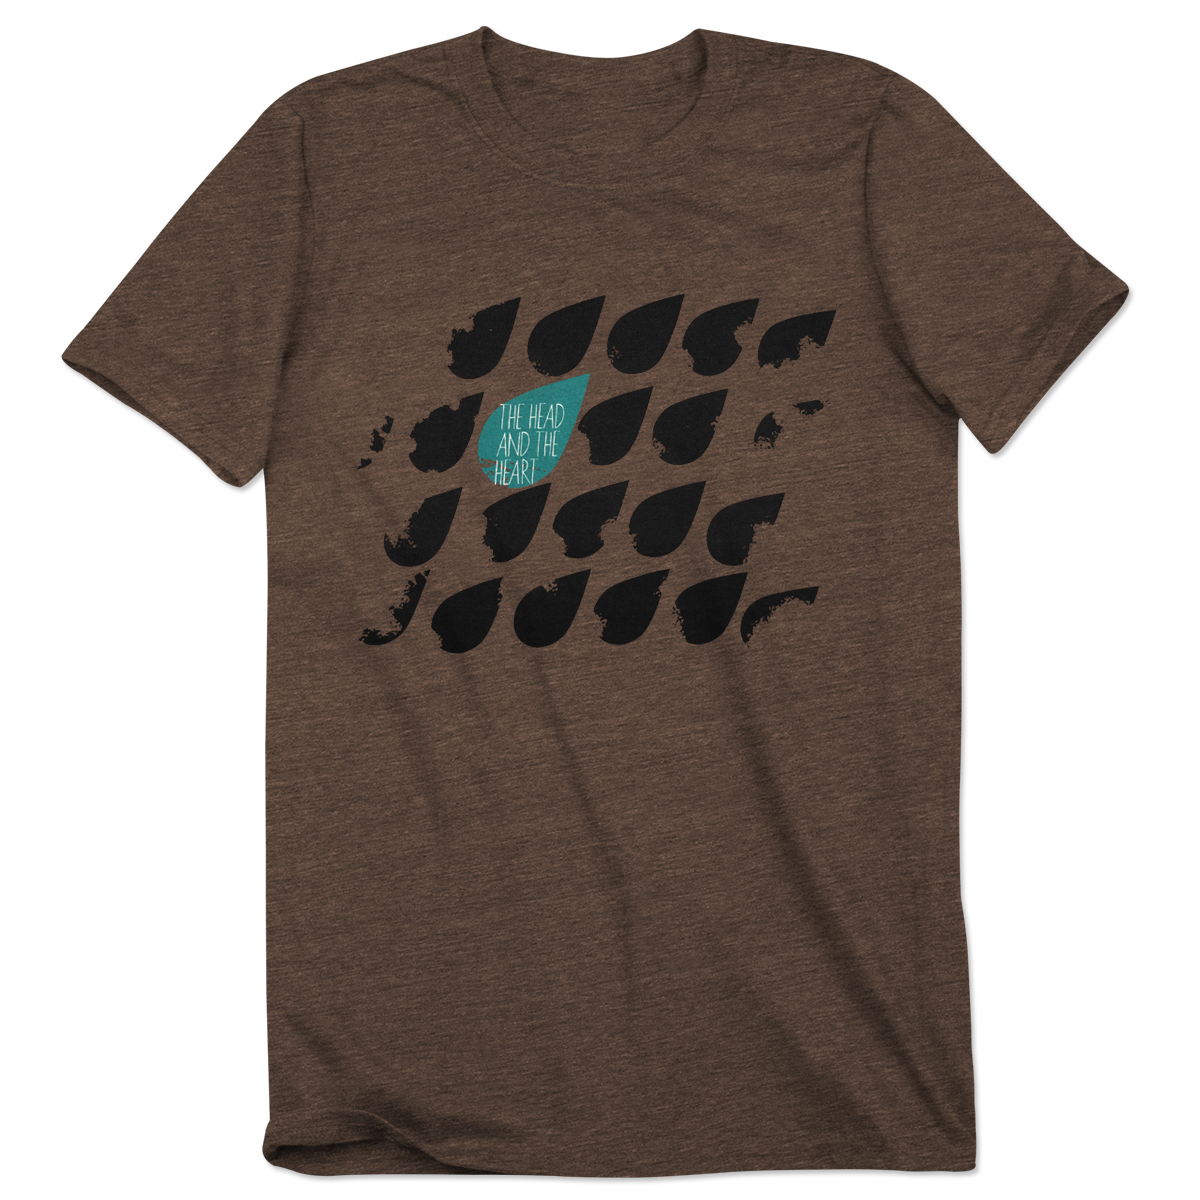 The Head and The Heart Raindrop Men's T-Shirt